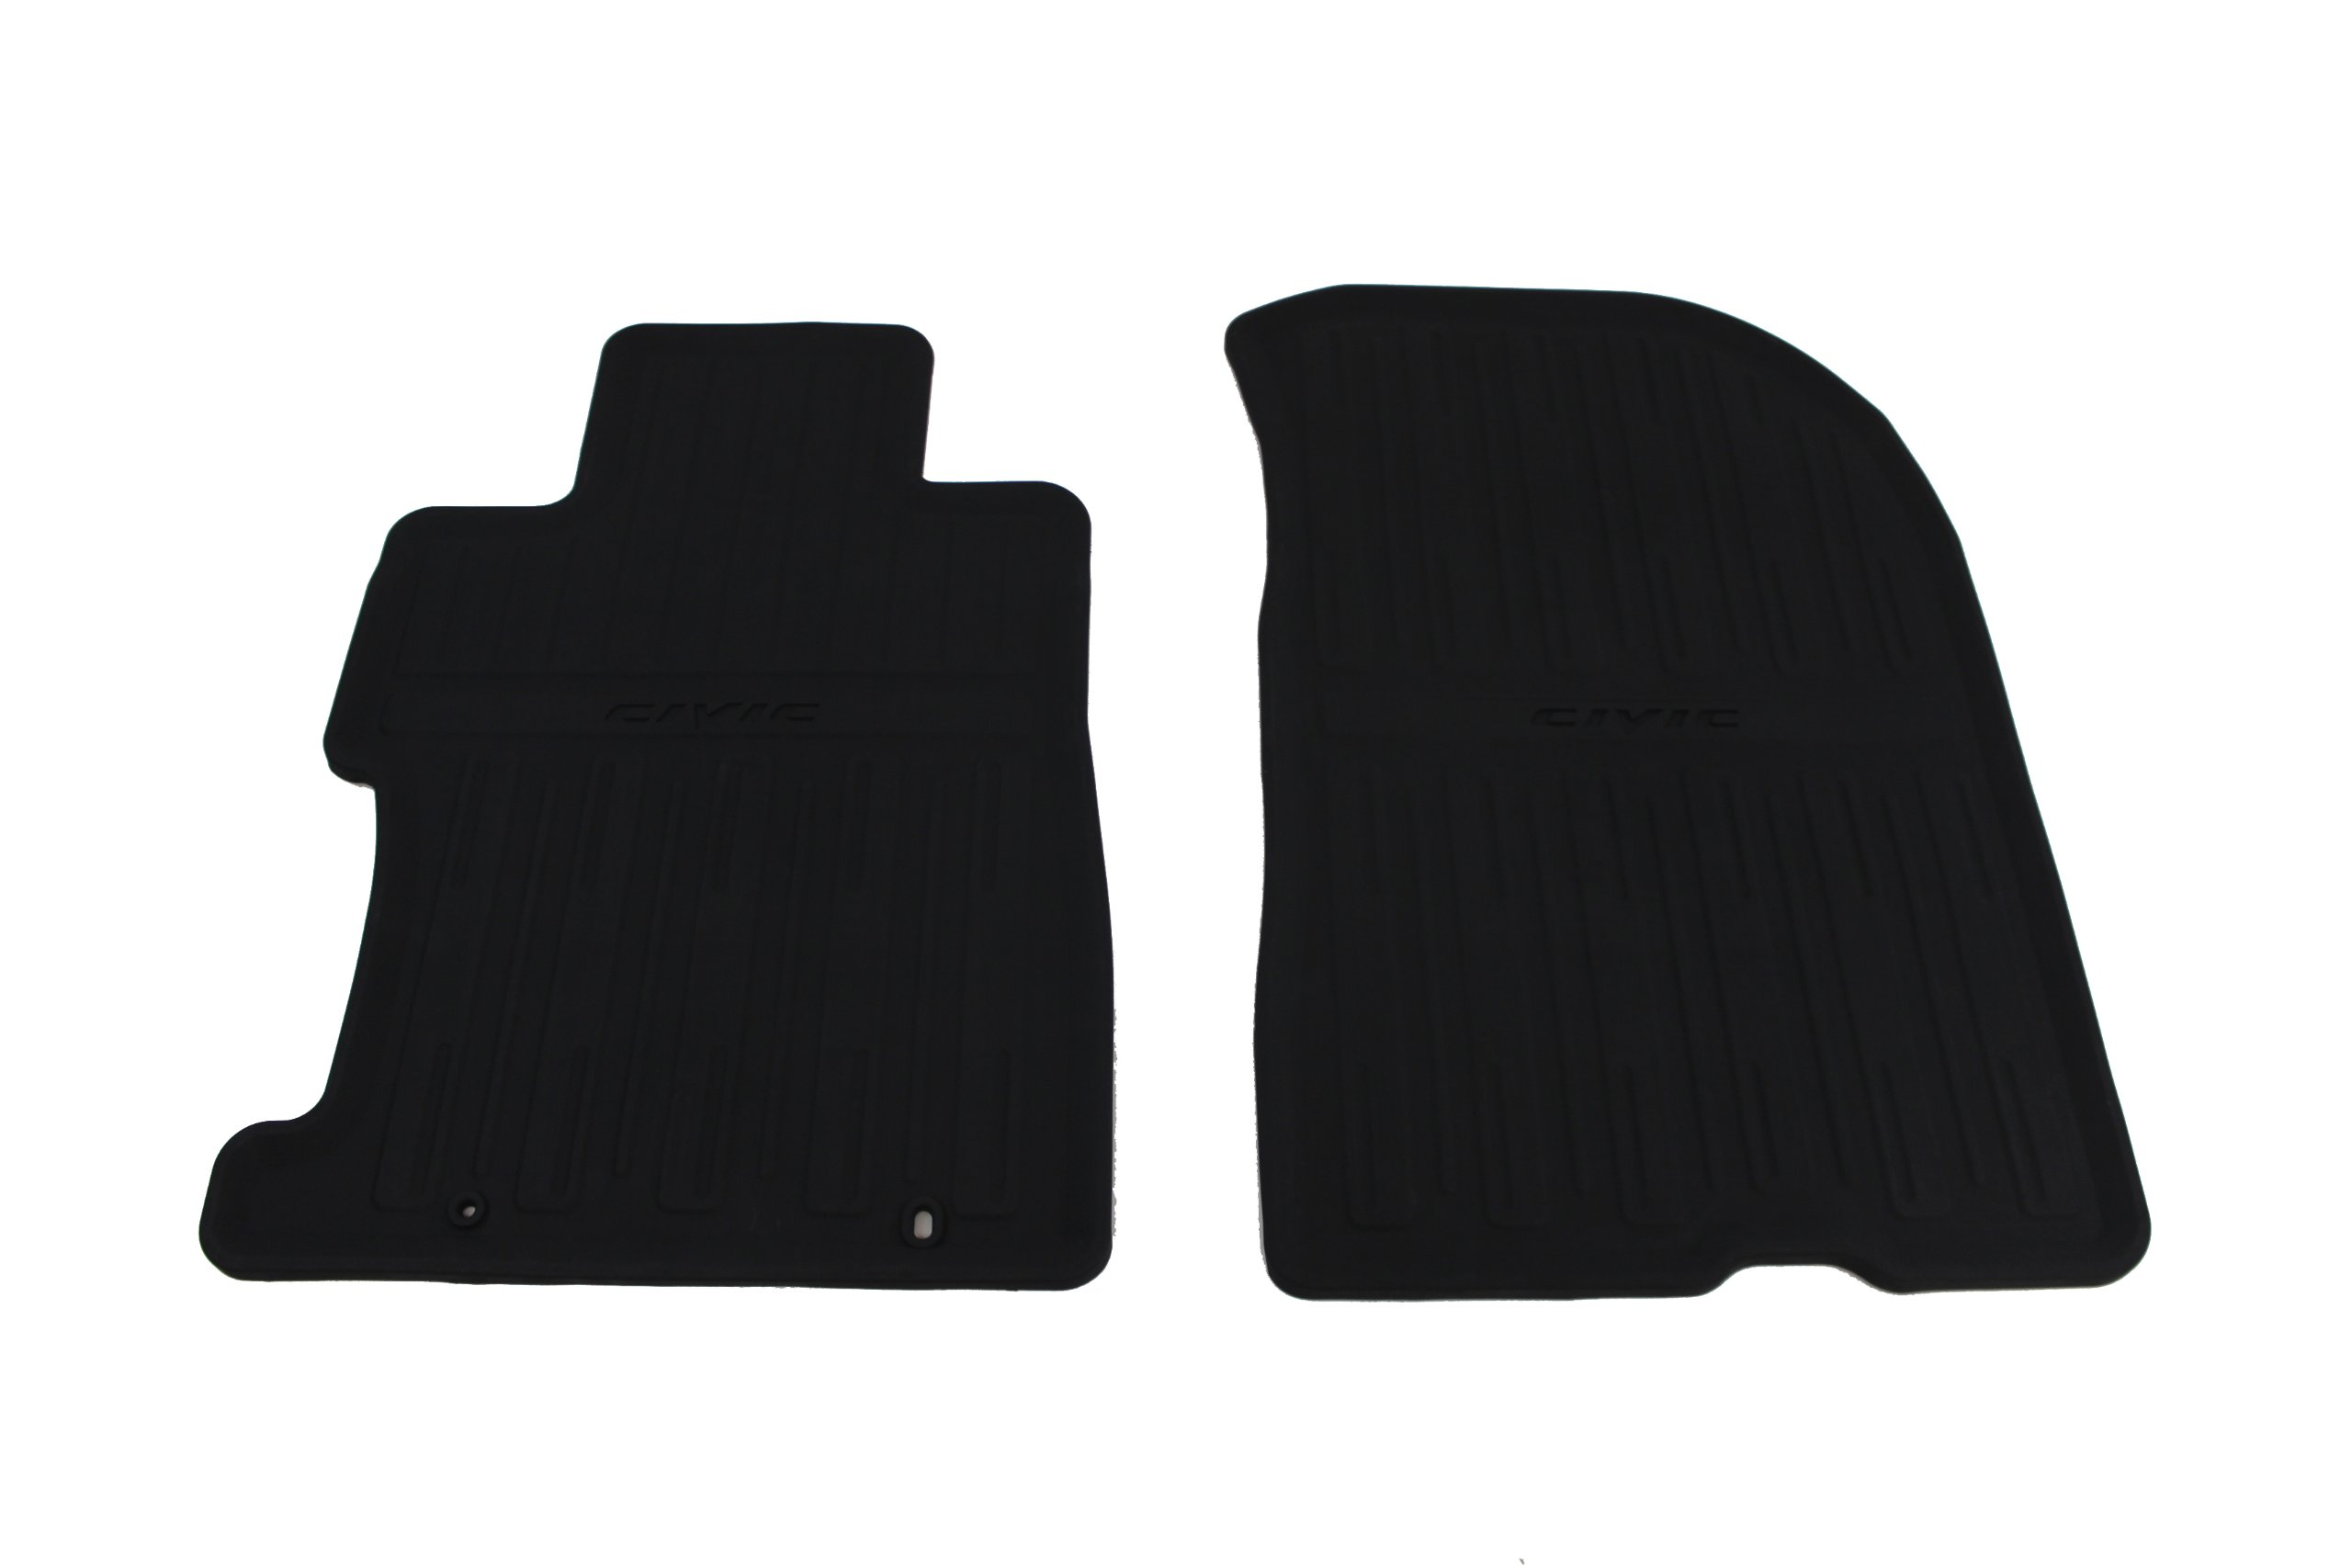 Amazon.com: Genuine Honda Accessories 08P13-SNA-110 Black All Season Mat  for Select Civic Models: Automotive